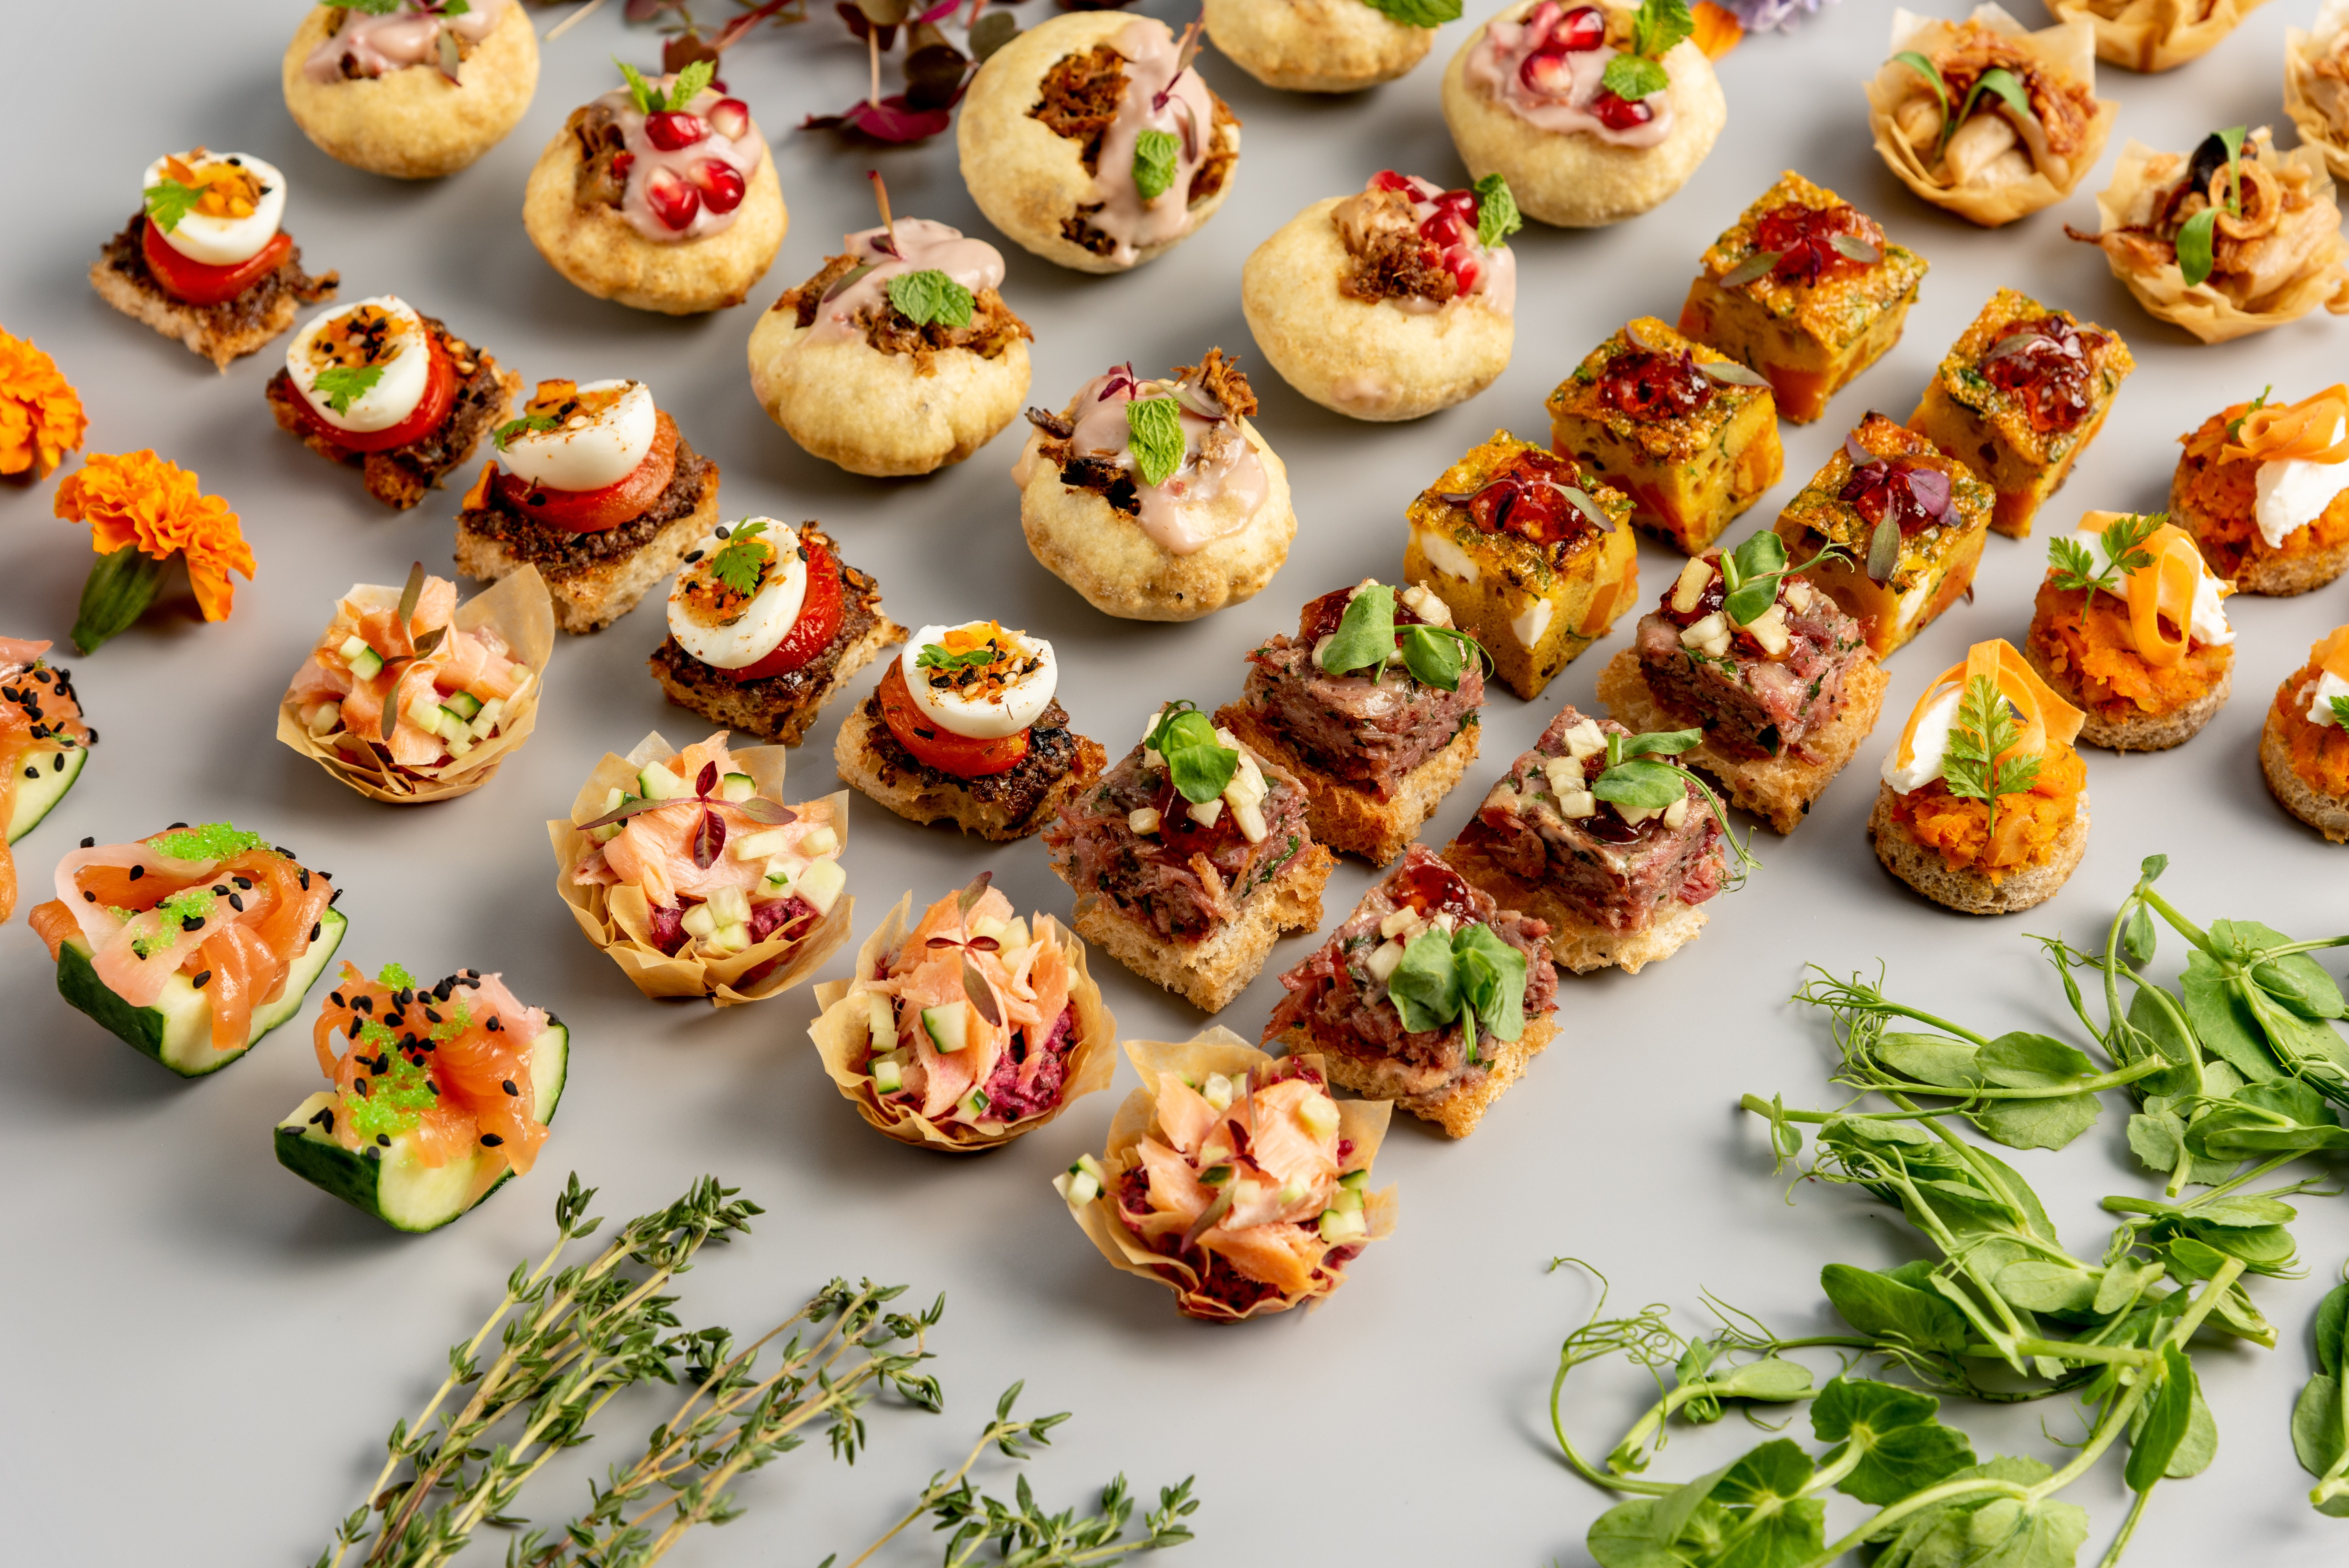 City Pantry affordable catering